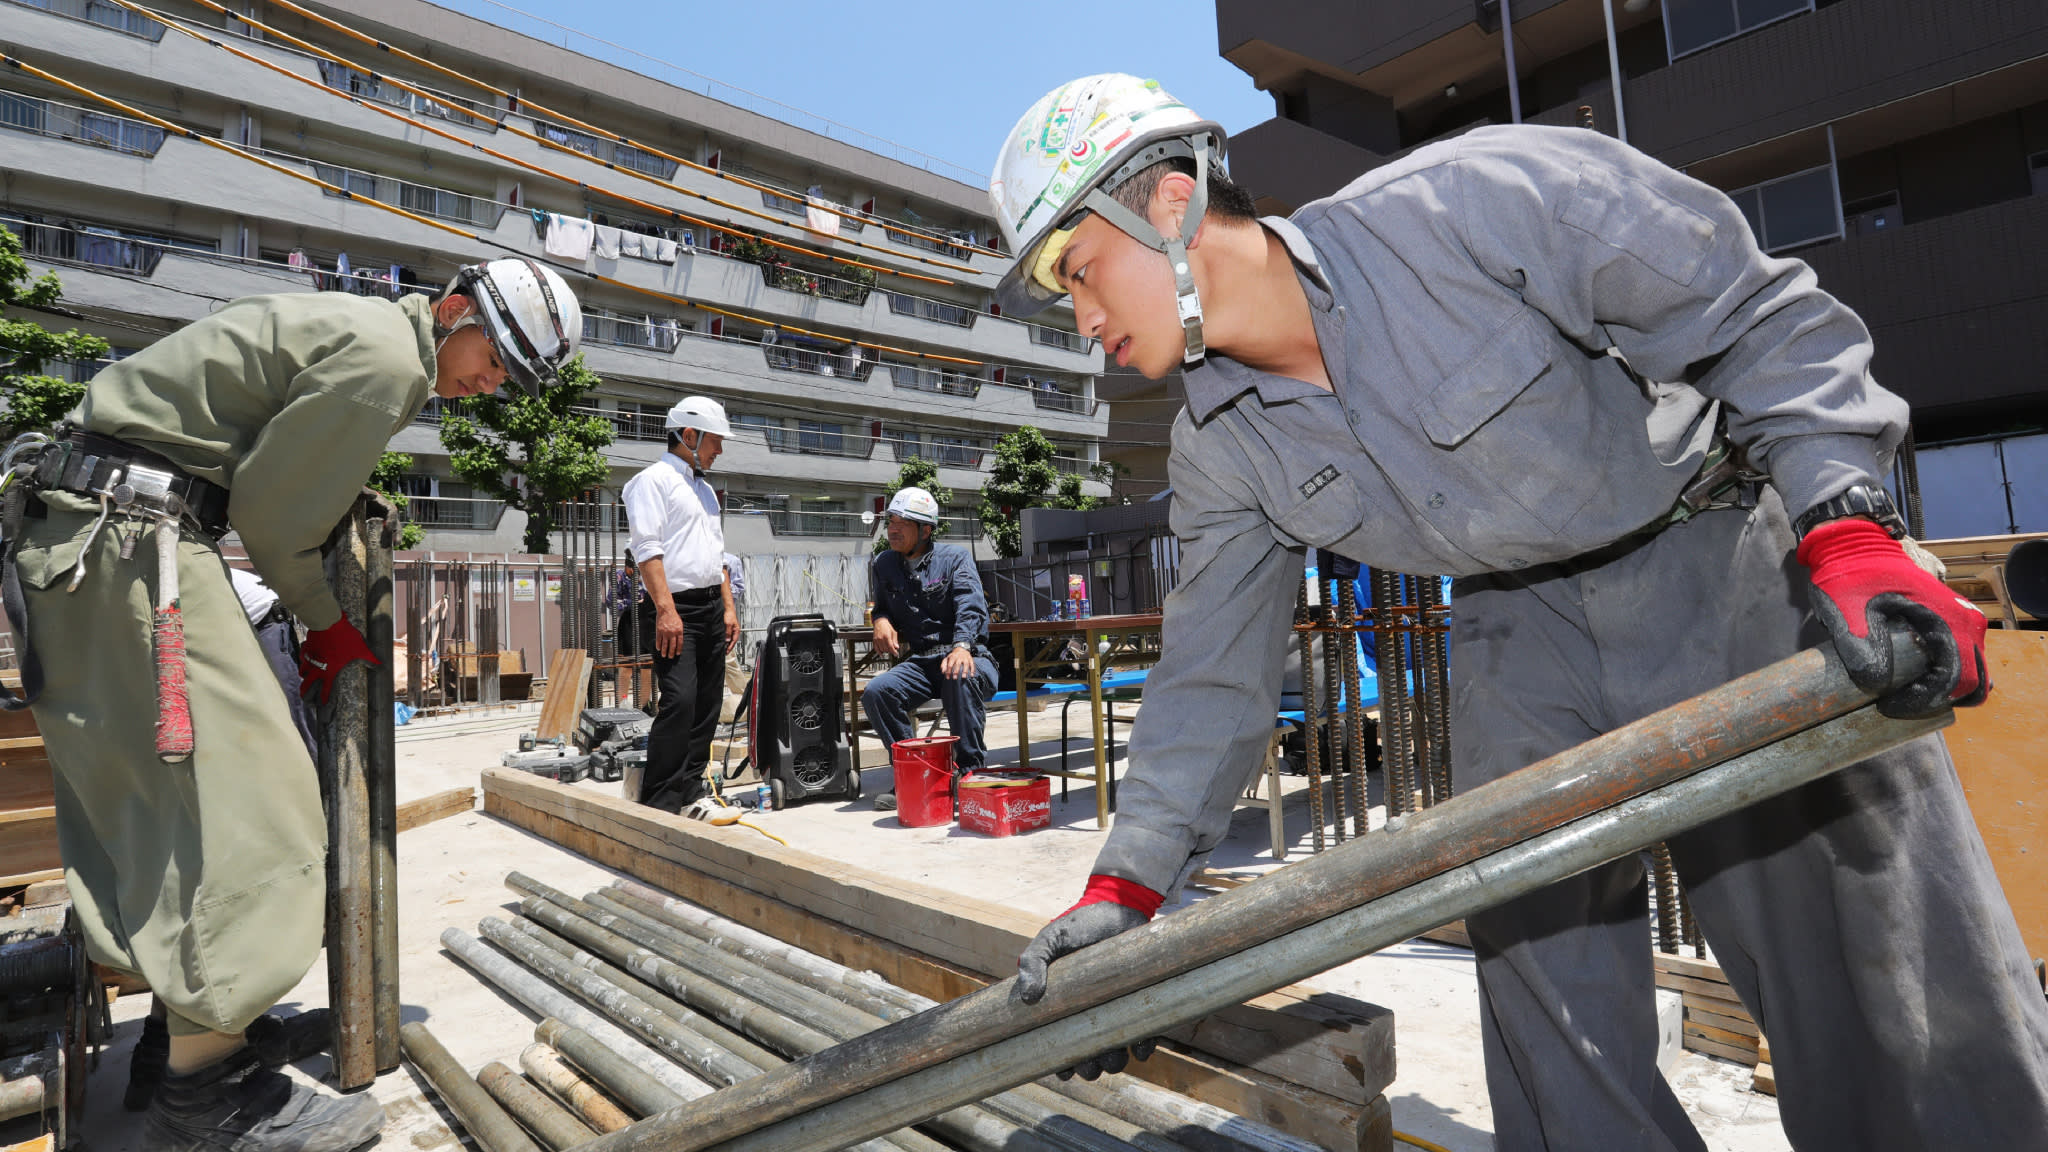 A Vietnamese technical trainee works at a construction site in Tokyo. (Photo by Ken Kobayashi)